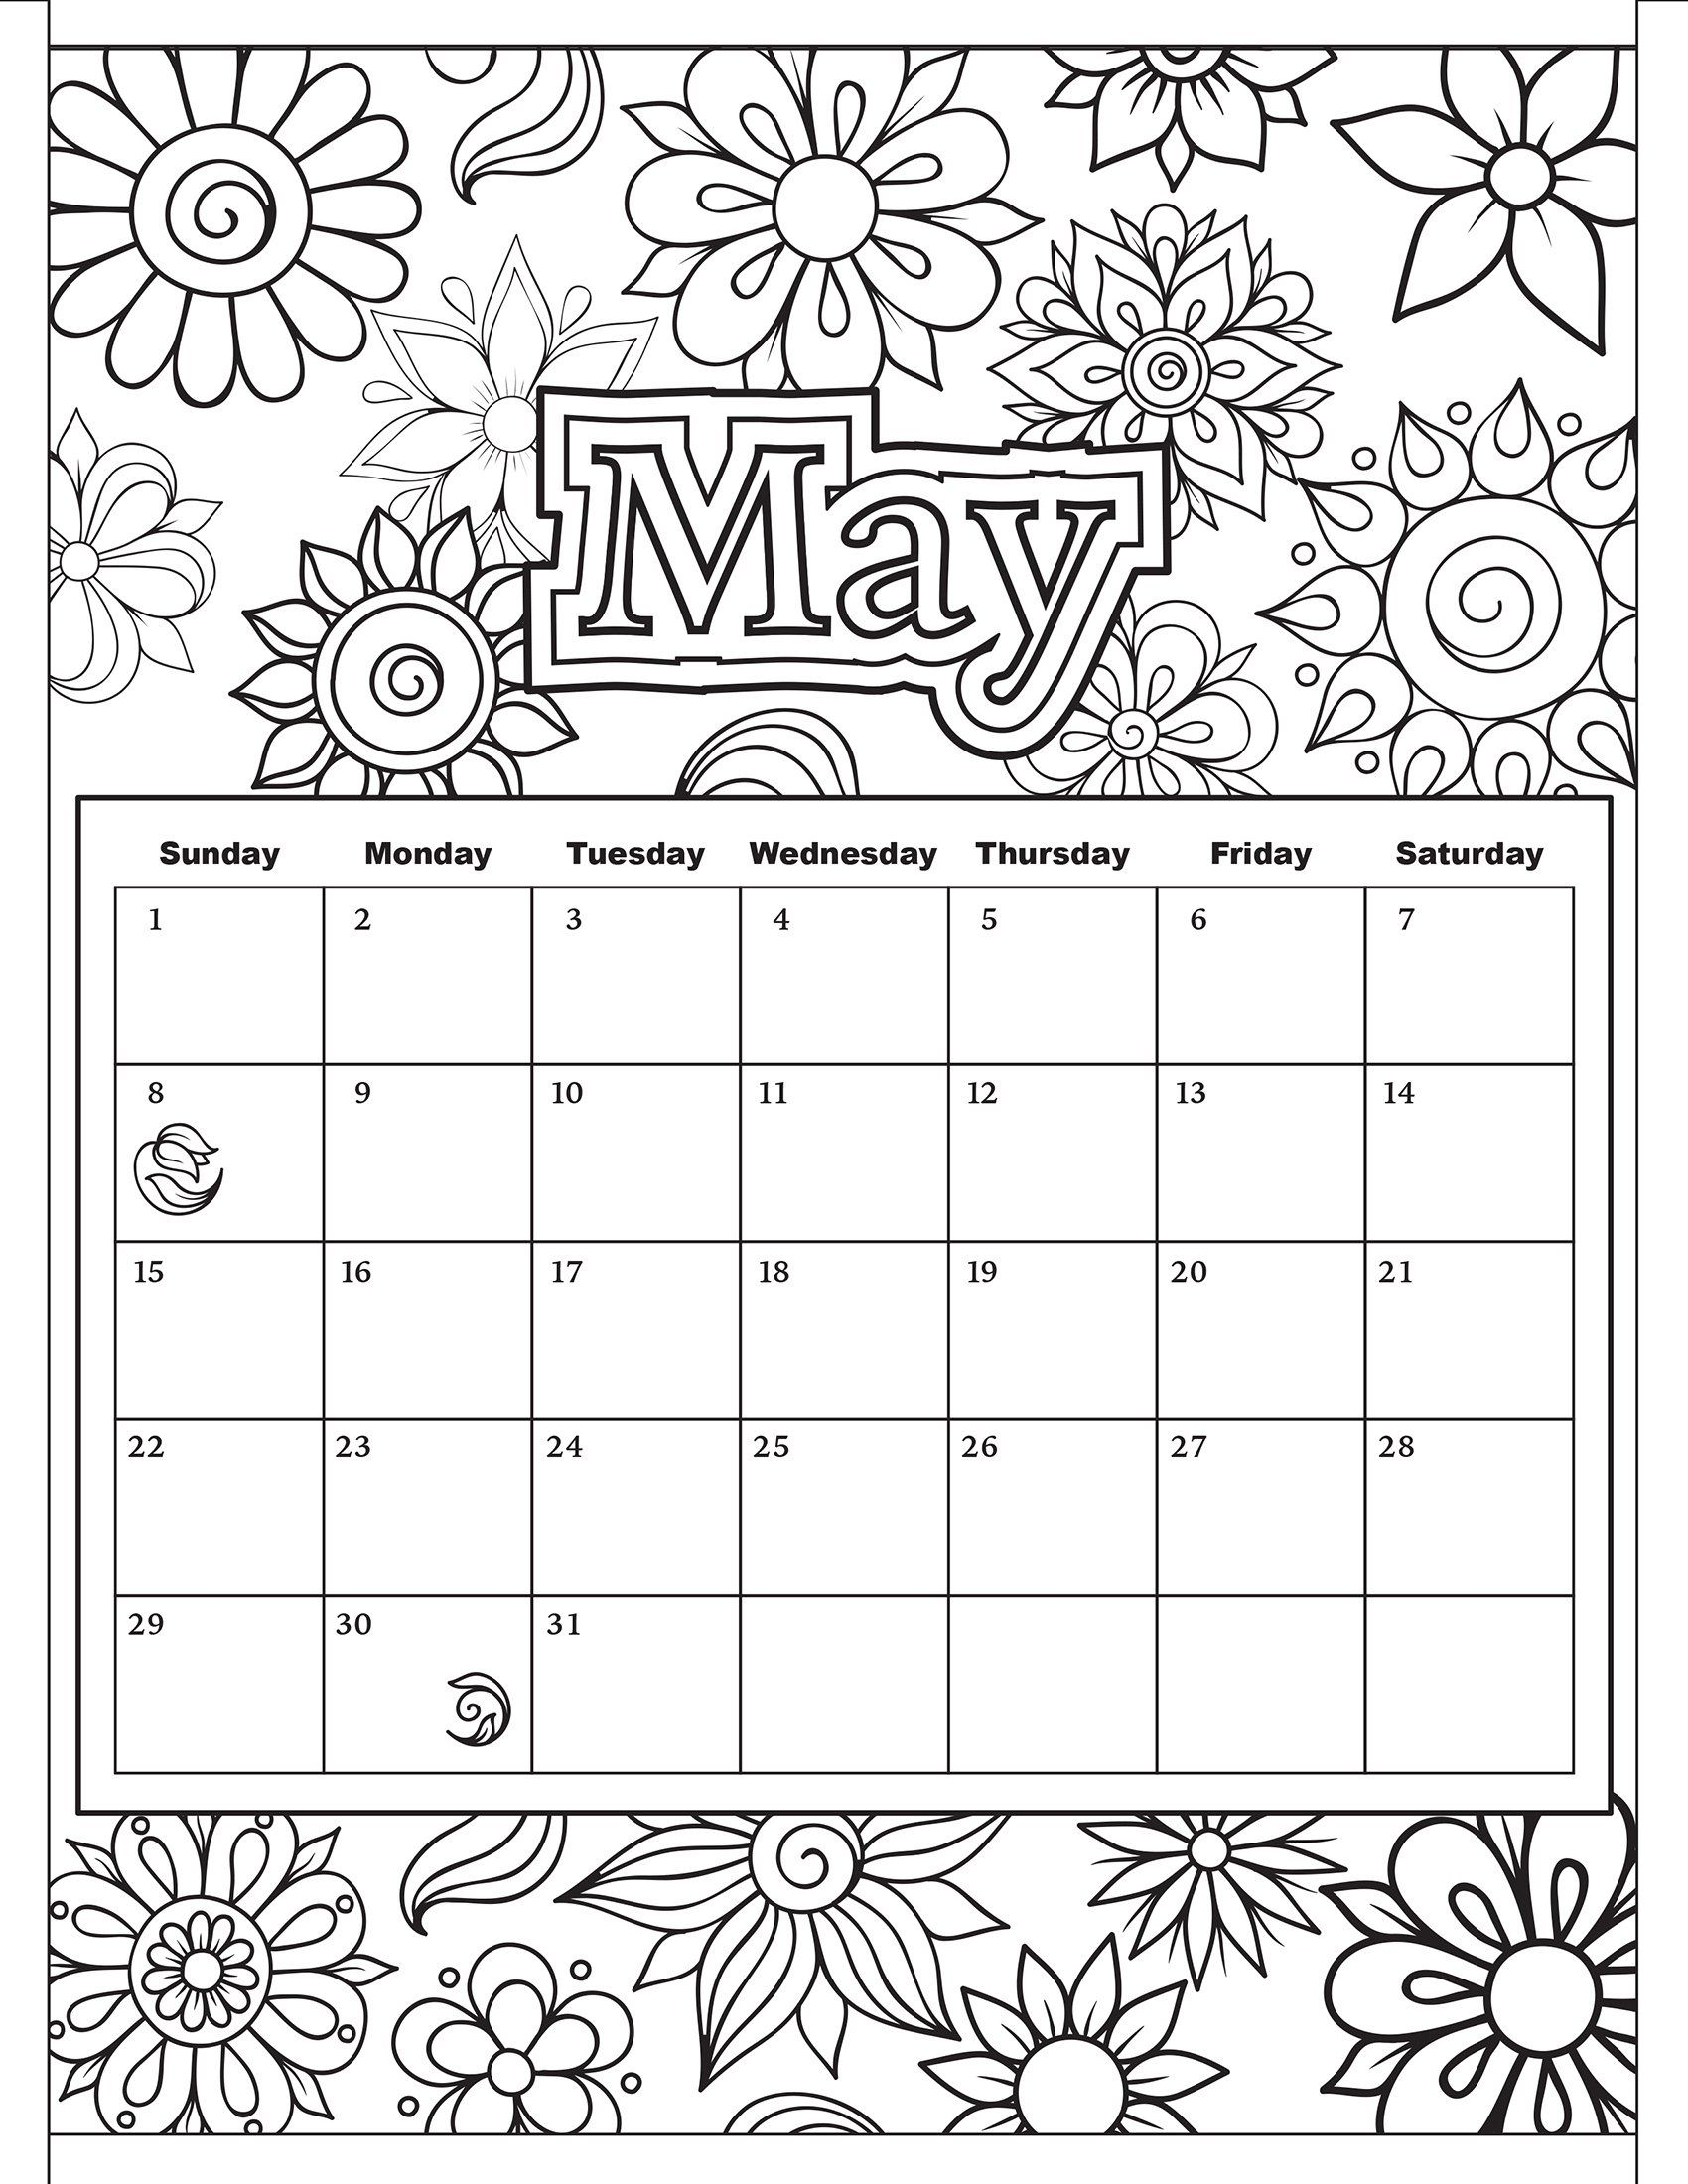 Free Download: Coloring Pages From Popular Adult Coloring Books with Free Coloring Calendars For June